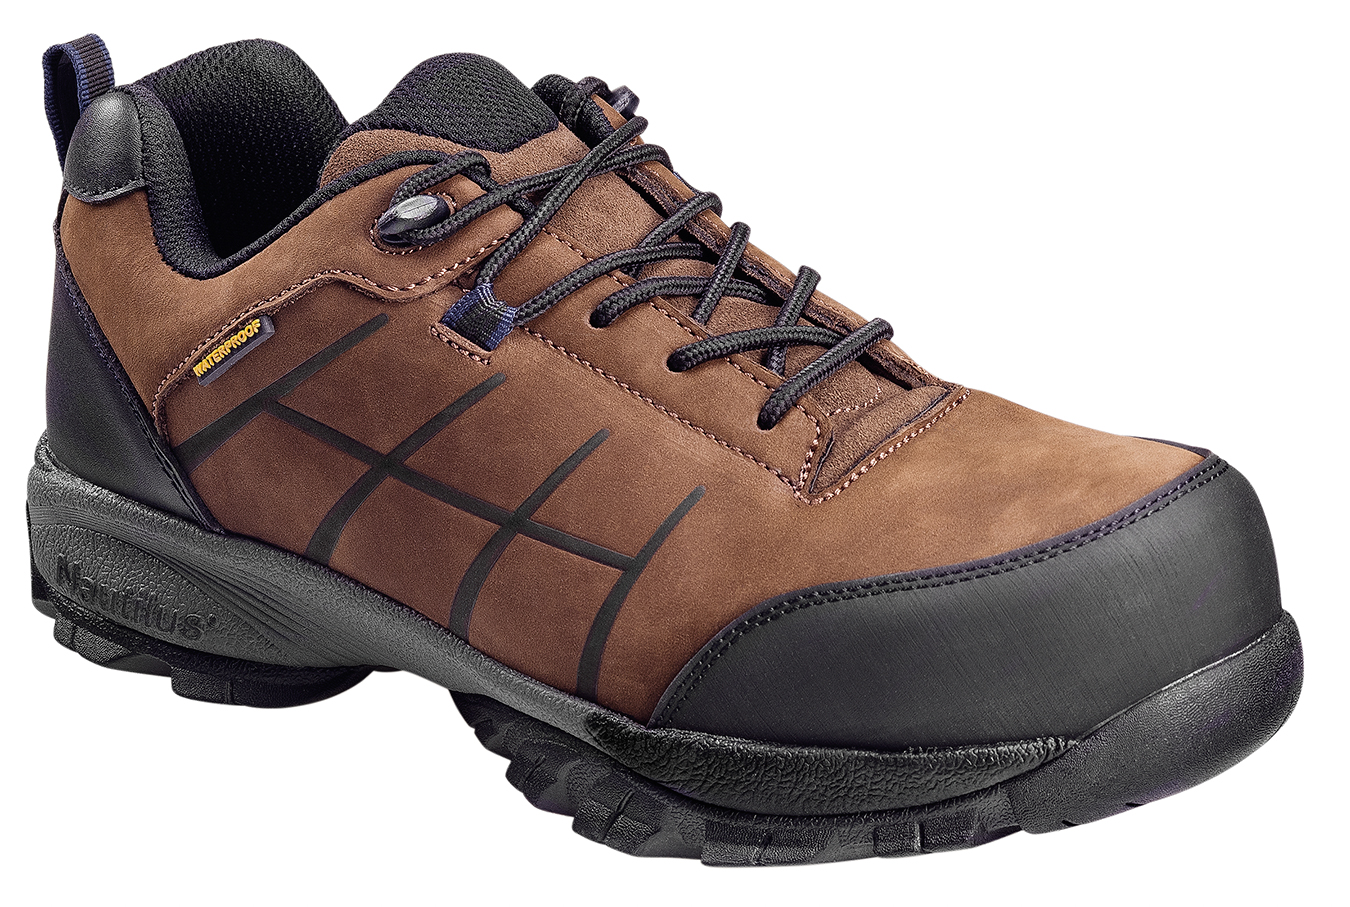 Mens SD WP Oxford M Brown Leather Waterproof Shoes 7 D